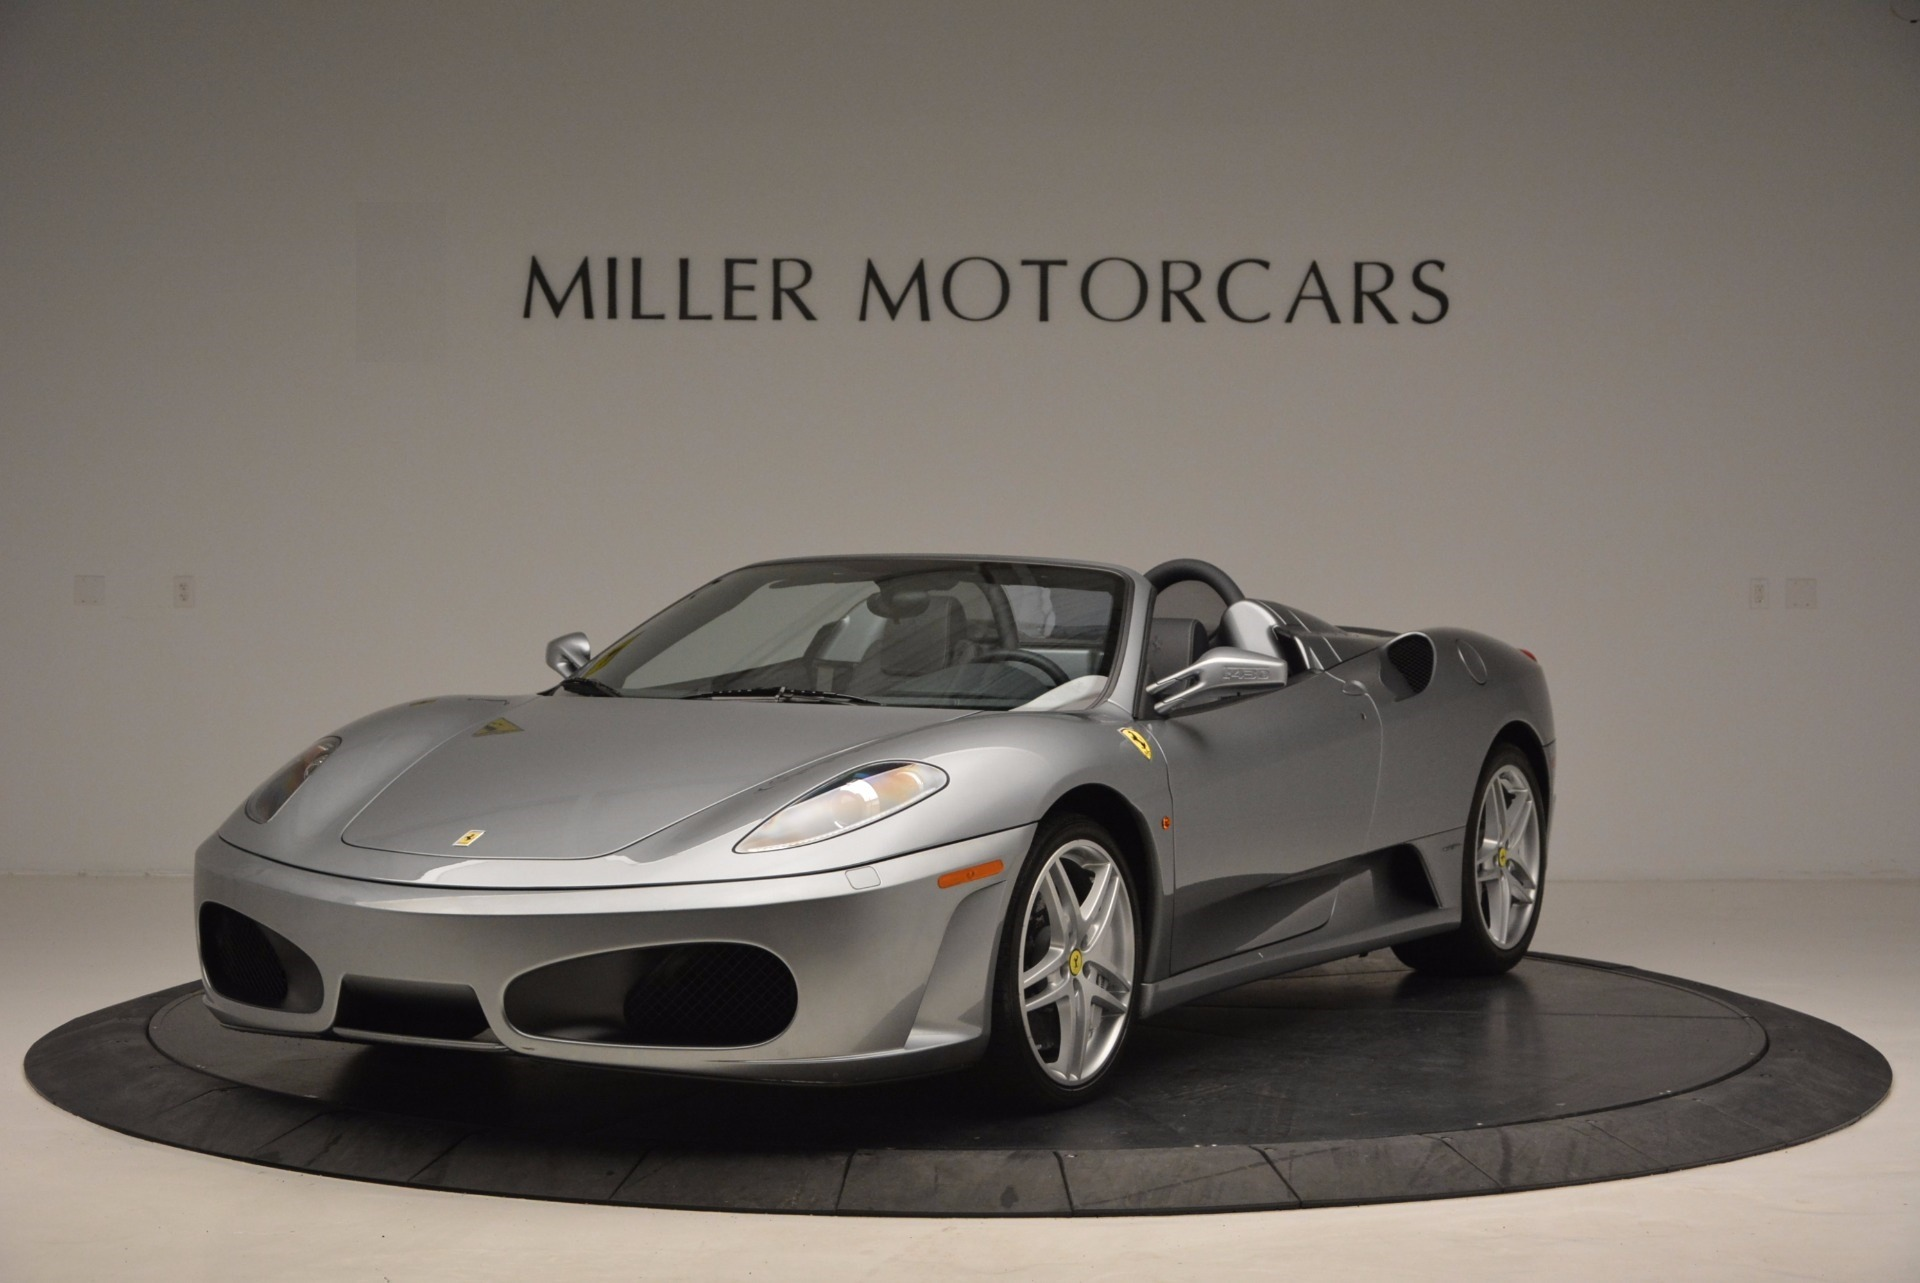 Used 2007 Ferrari F430 Spider for sale $121,900 at Rolls-Royce Motor Cars Greenwich in Greenwich CT 06830 1